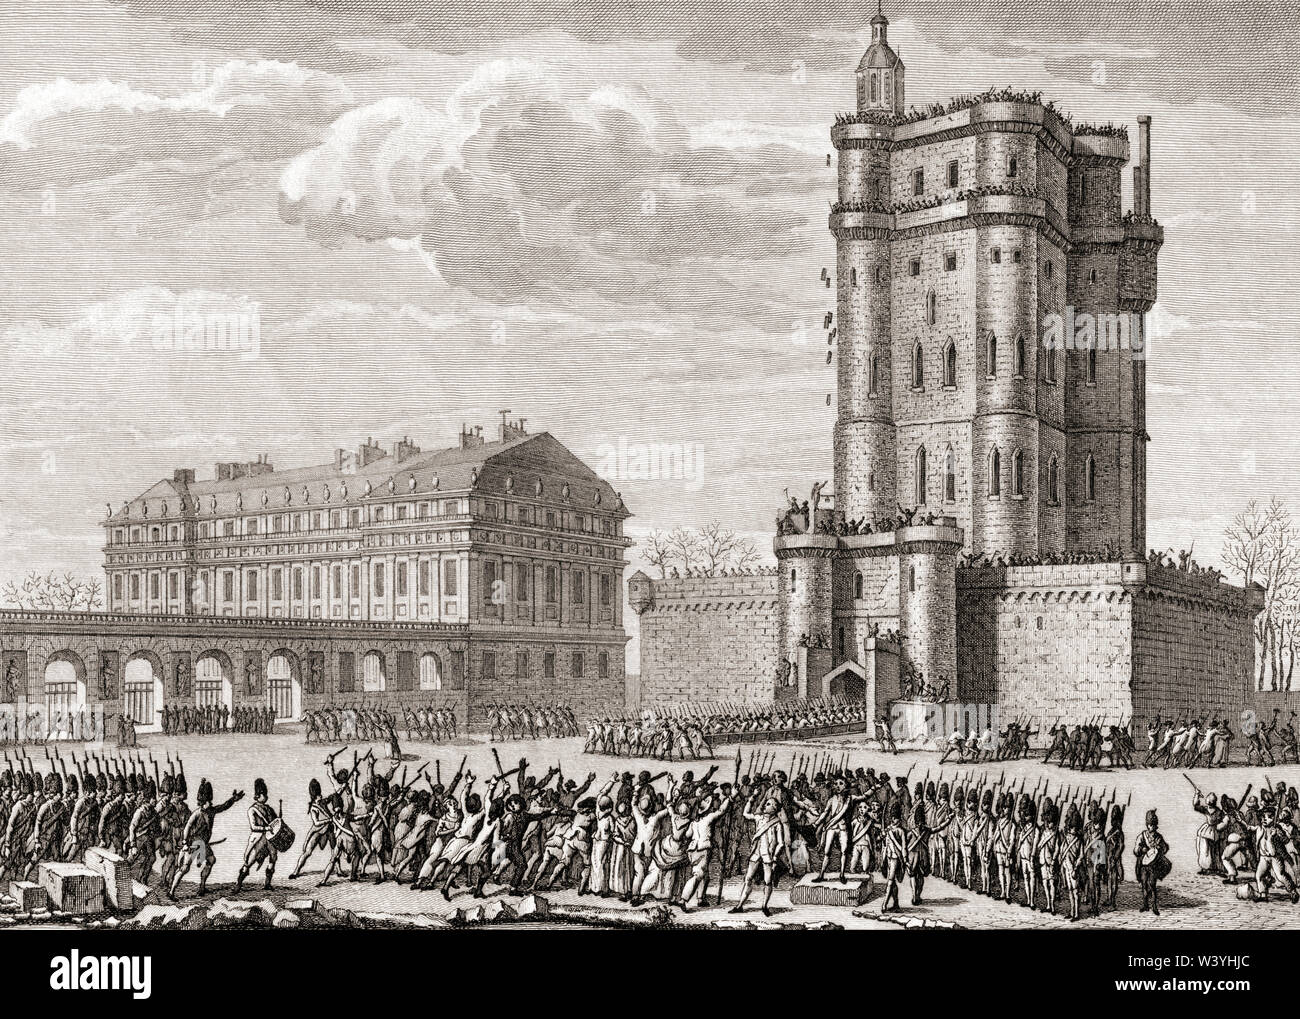 Soldiers drive away a rioting mob bent on destroying the Château de Vincennes, Paris, France, February 28, 1791. - Stock Image